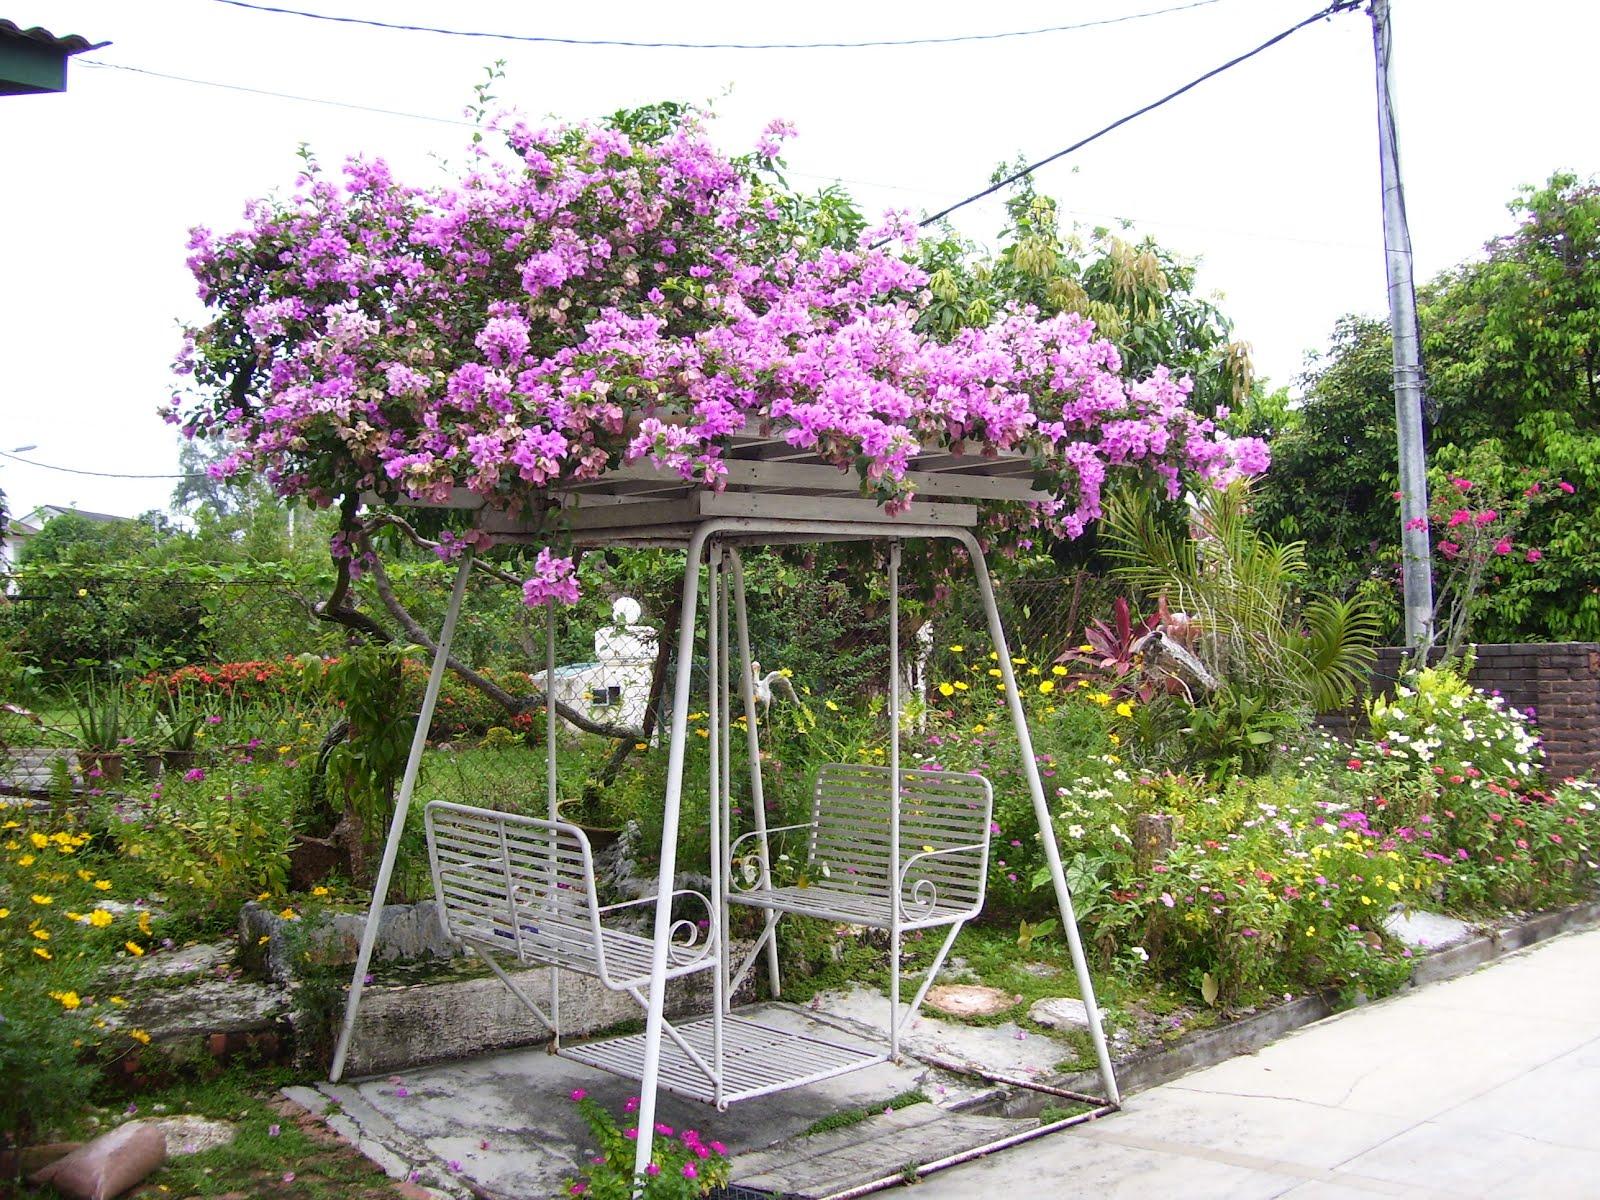 theperanakanconnection: How to grow bougainvillea from cutting